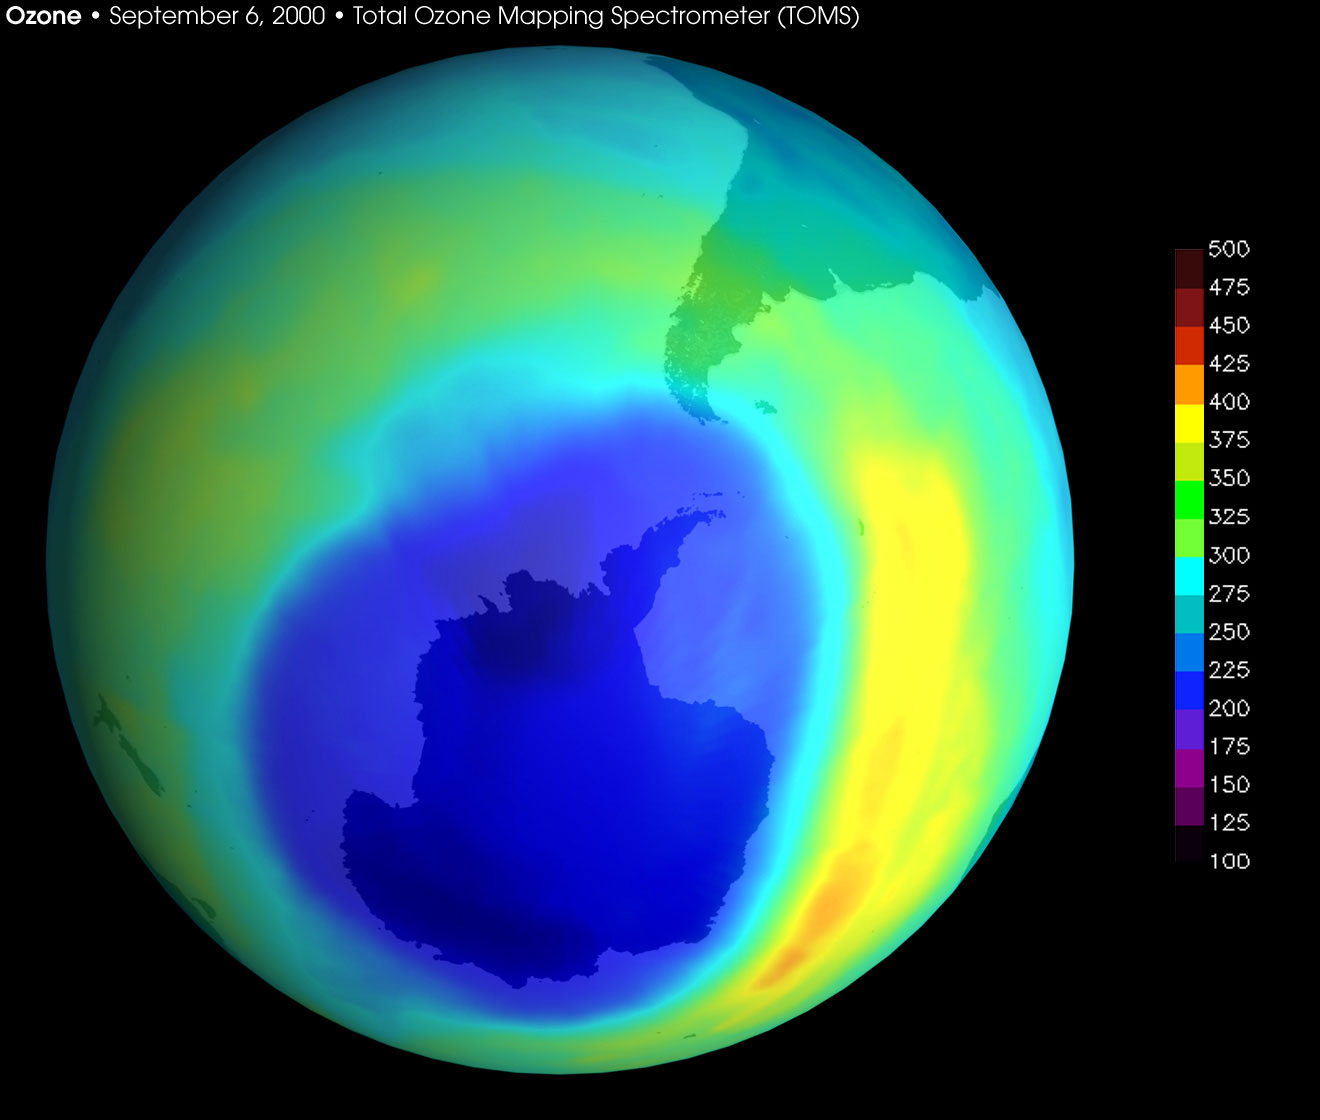 Image: Earth's ozone hole rapidly shrinking following ban of ozone depleting chemicals